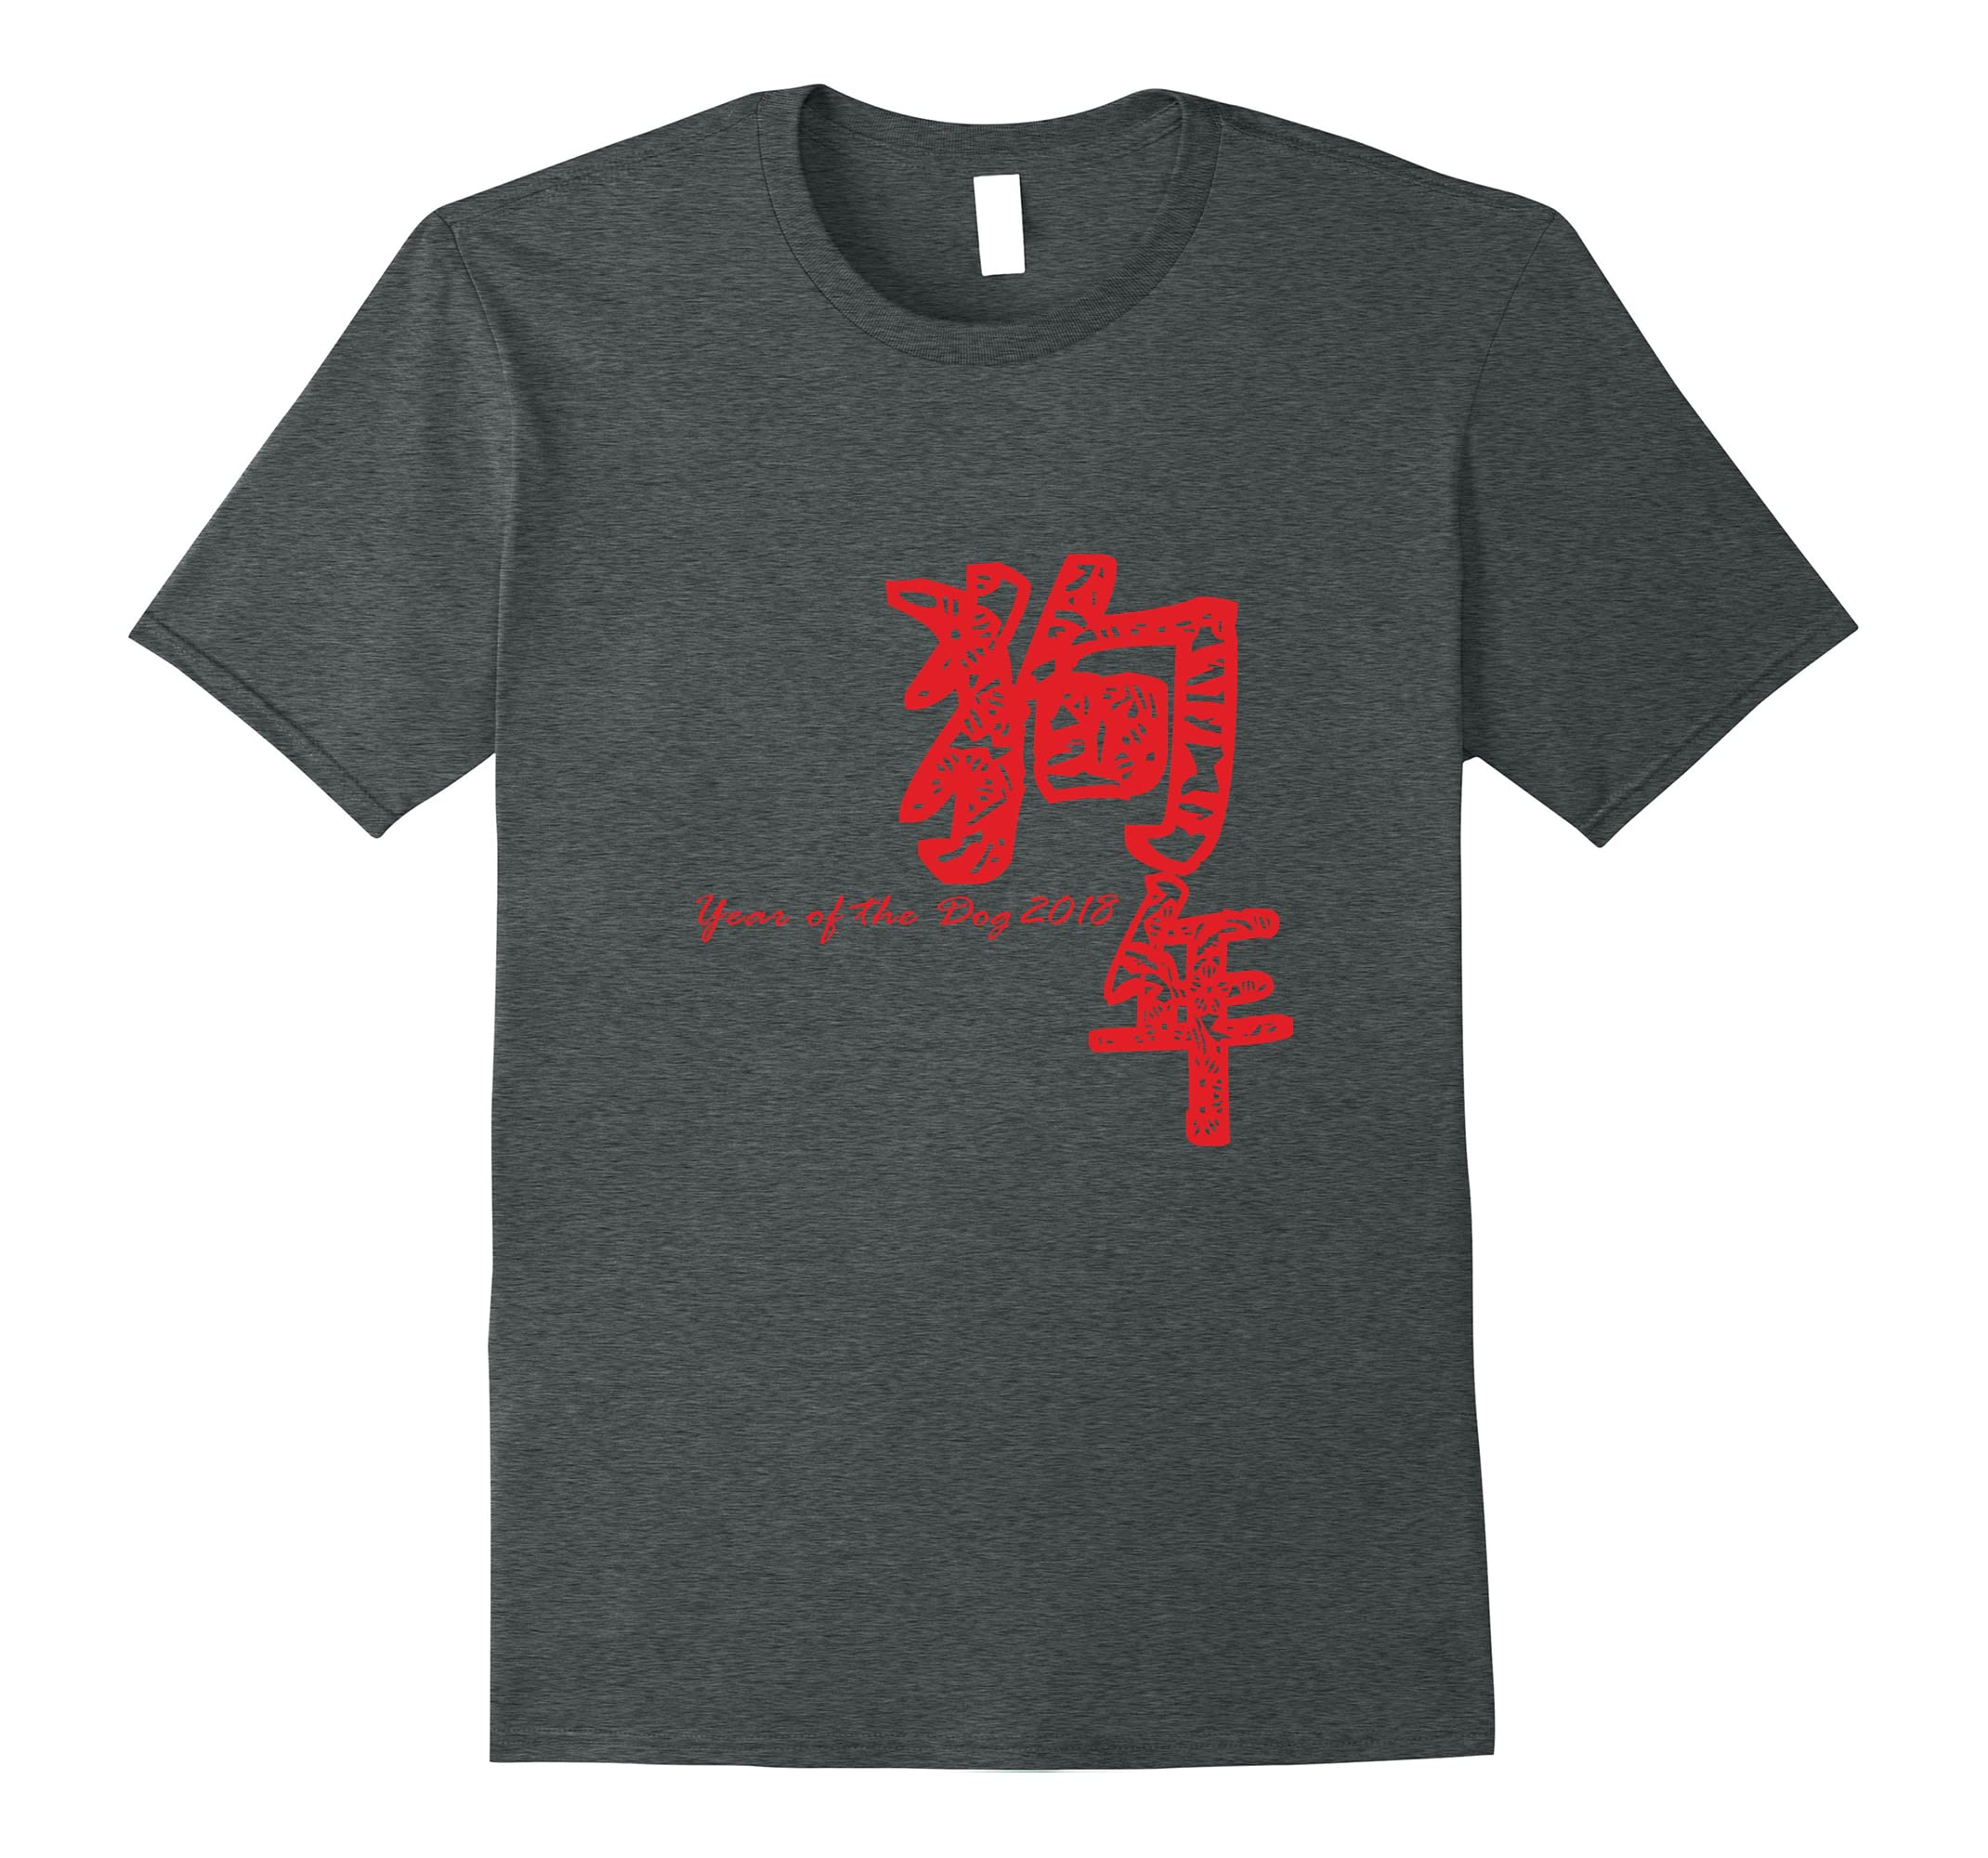 2018 Chinese New Year - Paper cut window grill-ah my shirt one gift